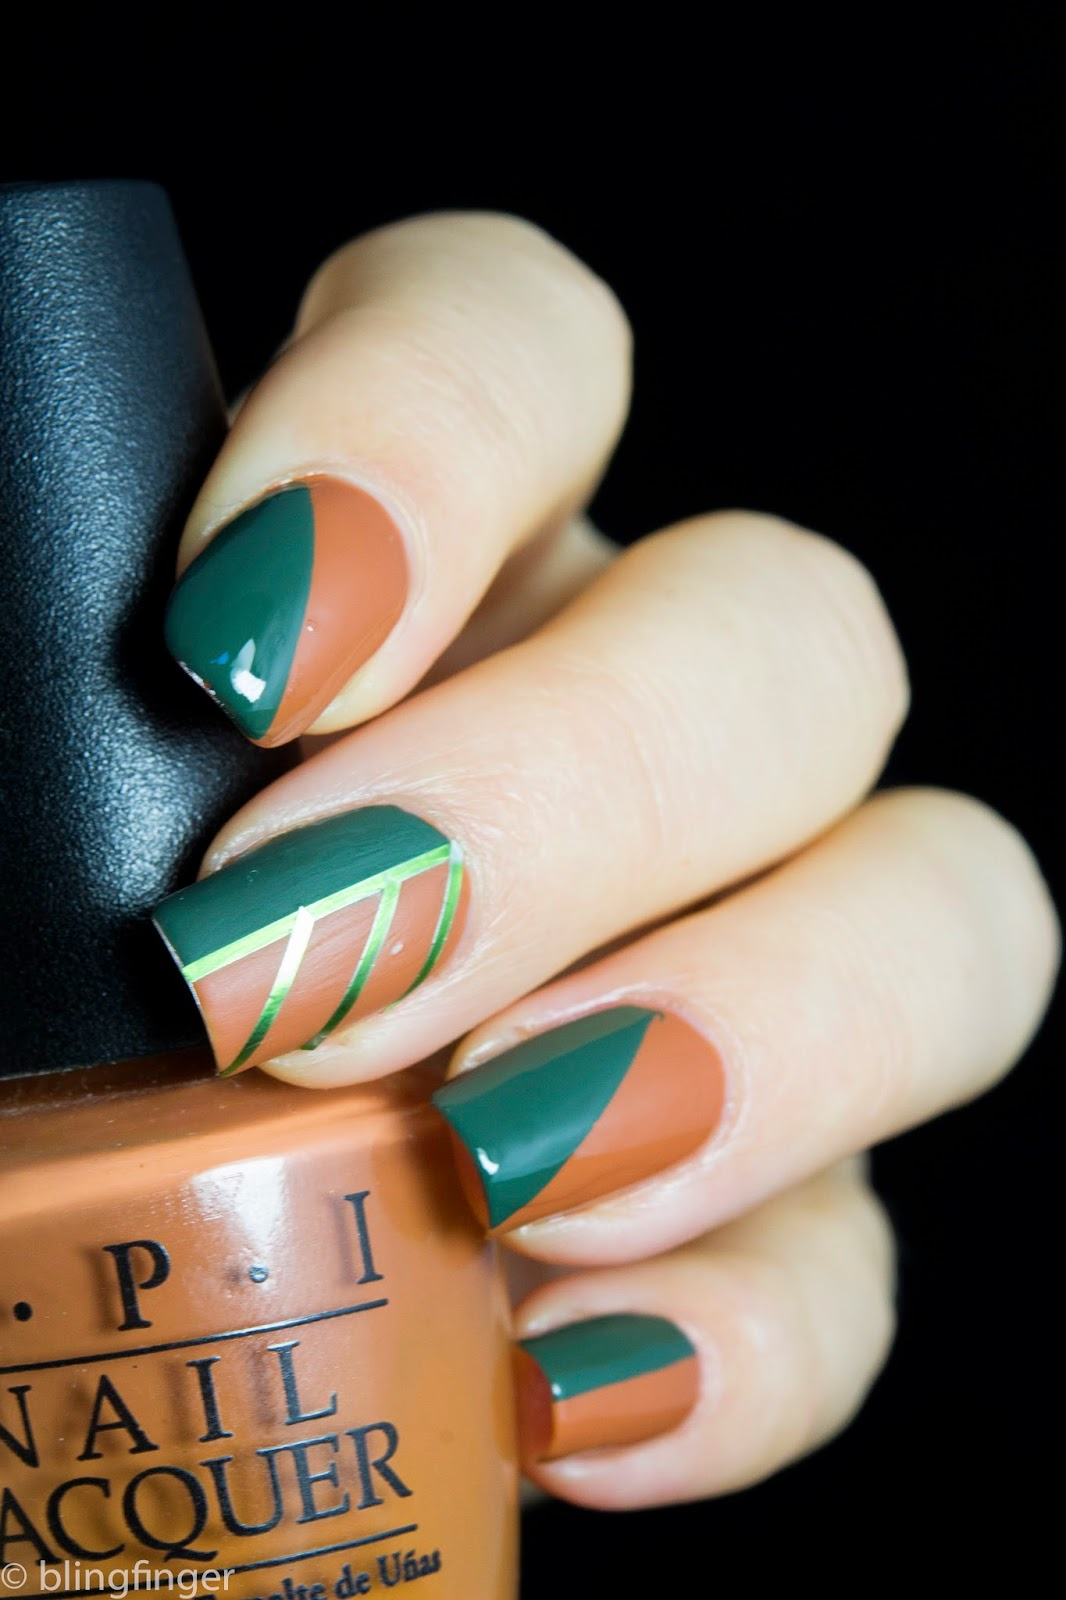 Nail Polish Designs Two Colors - Creative Touch